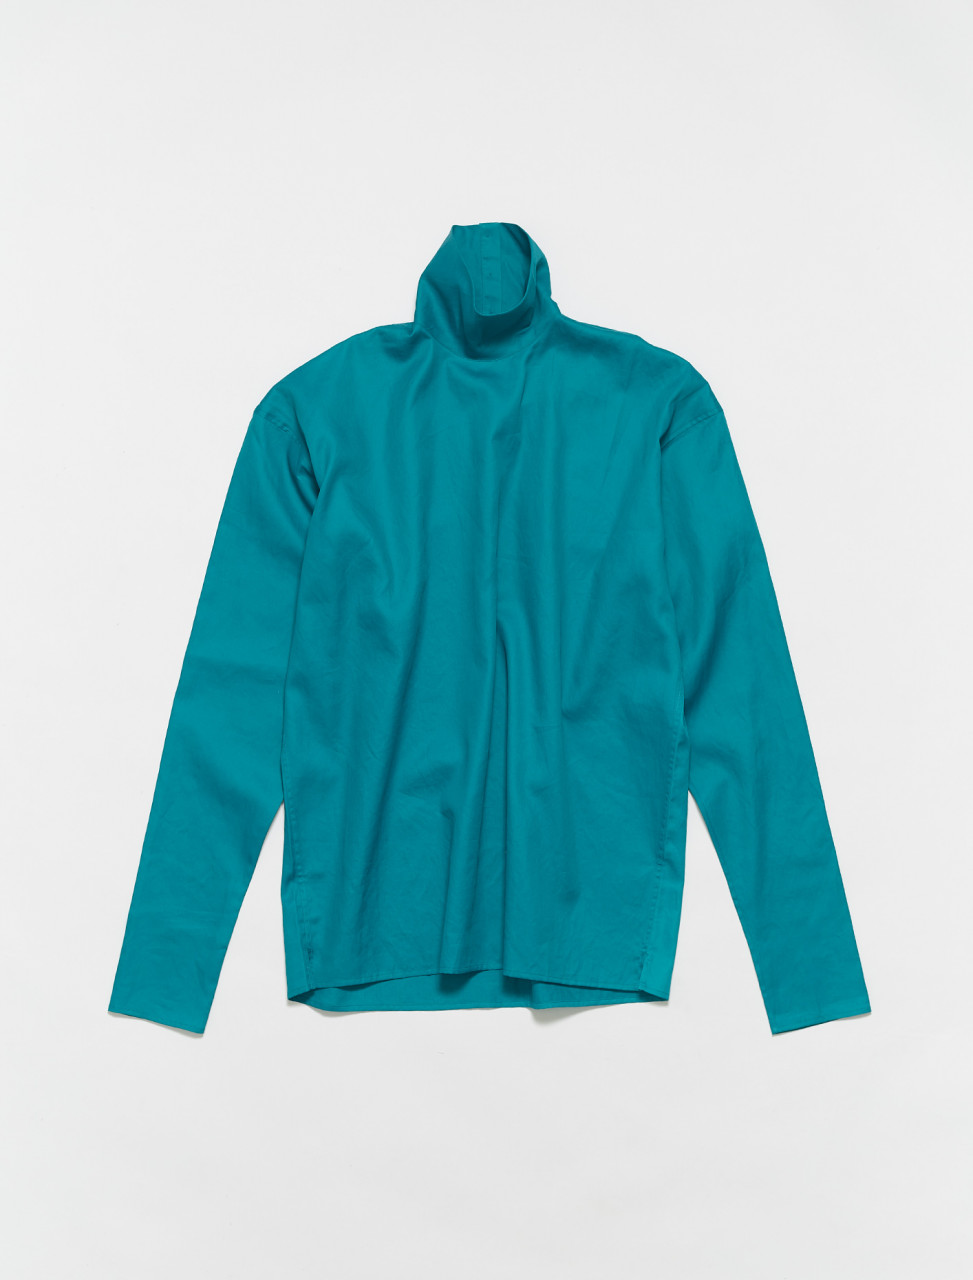 W-211-TO292-LF560-664 LEMAIRE HIGHNECK SECOND SKIN IN DEEP LAKE GREEN